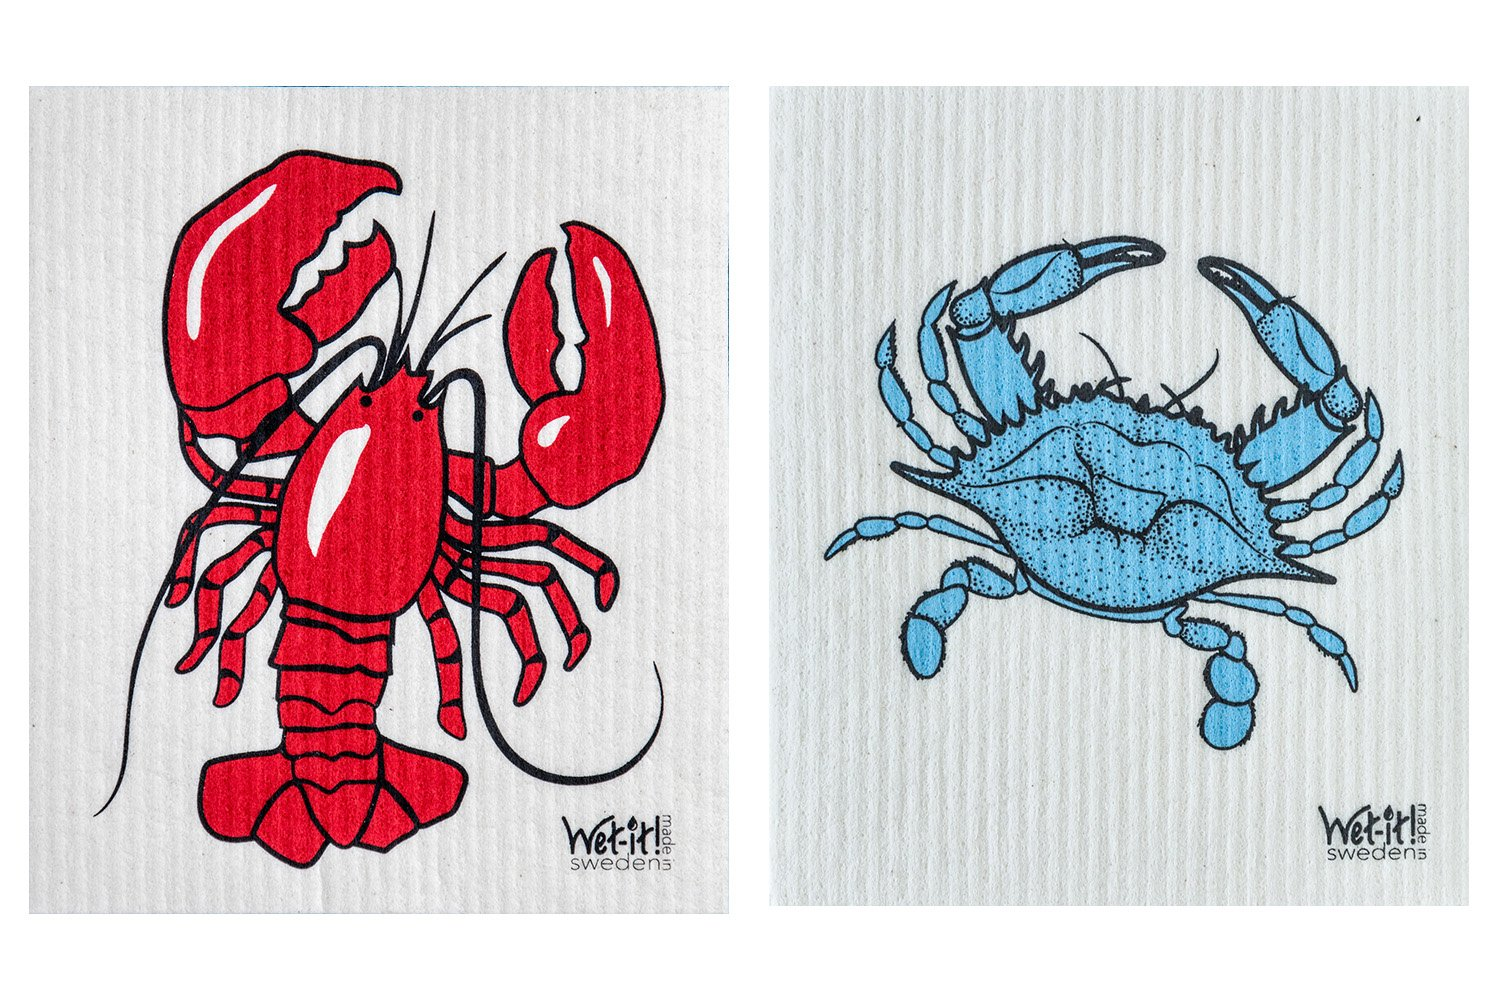 Wet-It Swedish Dishcloth Set of 2 (Lobster and Crab) by Wet-It (Image #1)